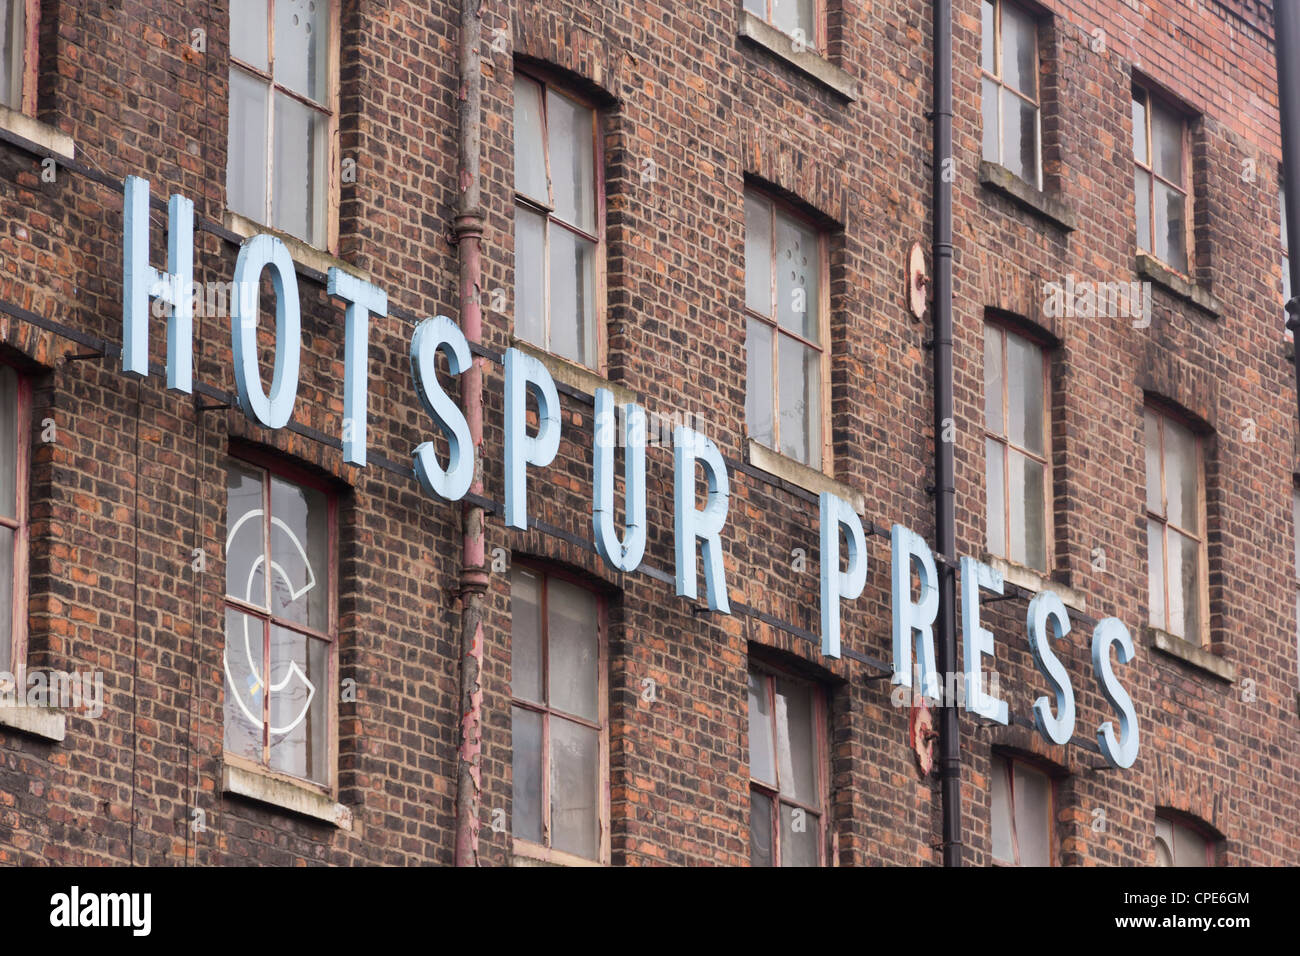 A section of the Hotspur Press Building on Cambridge Street in Manchester, a place of new developments in creative - Stock Image